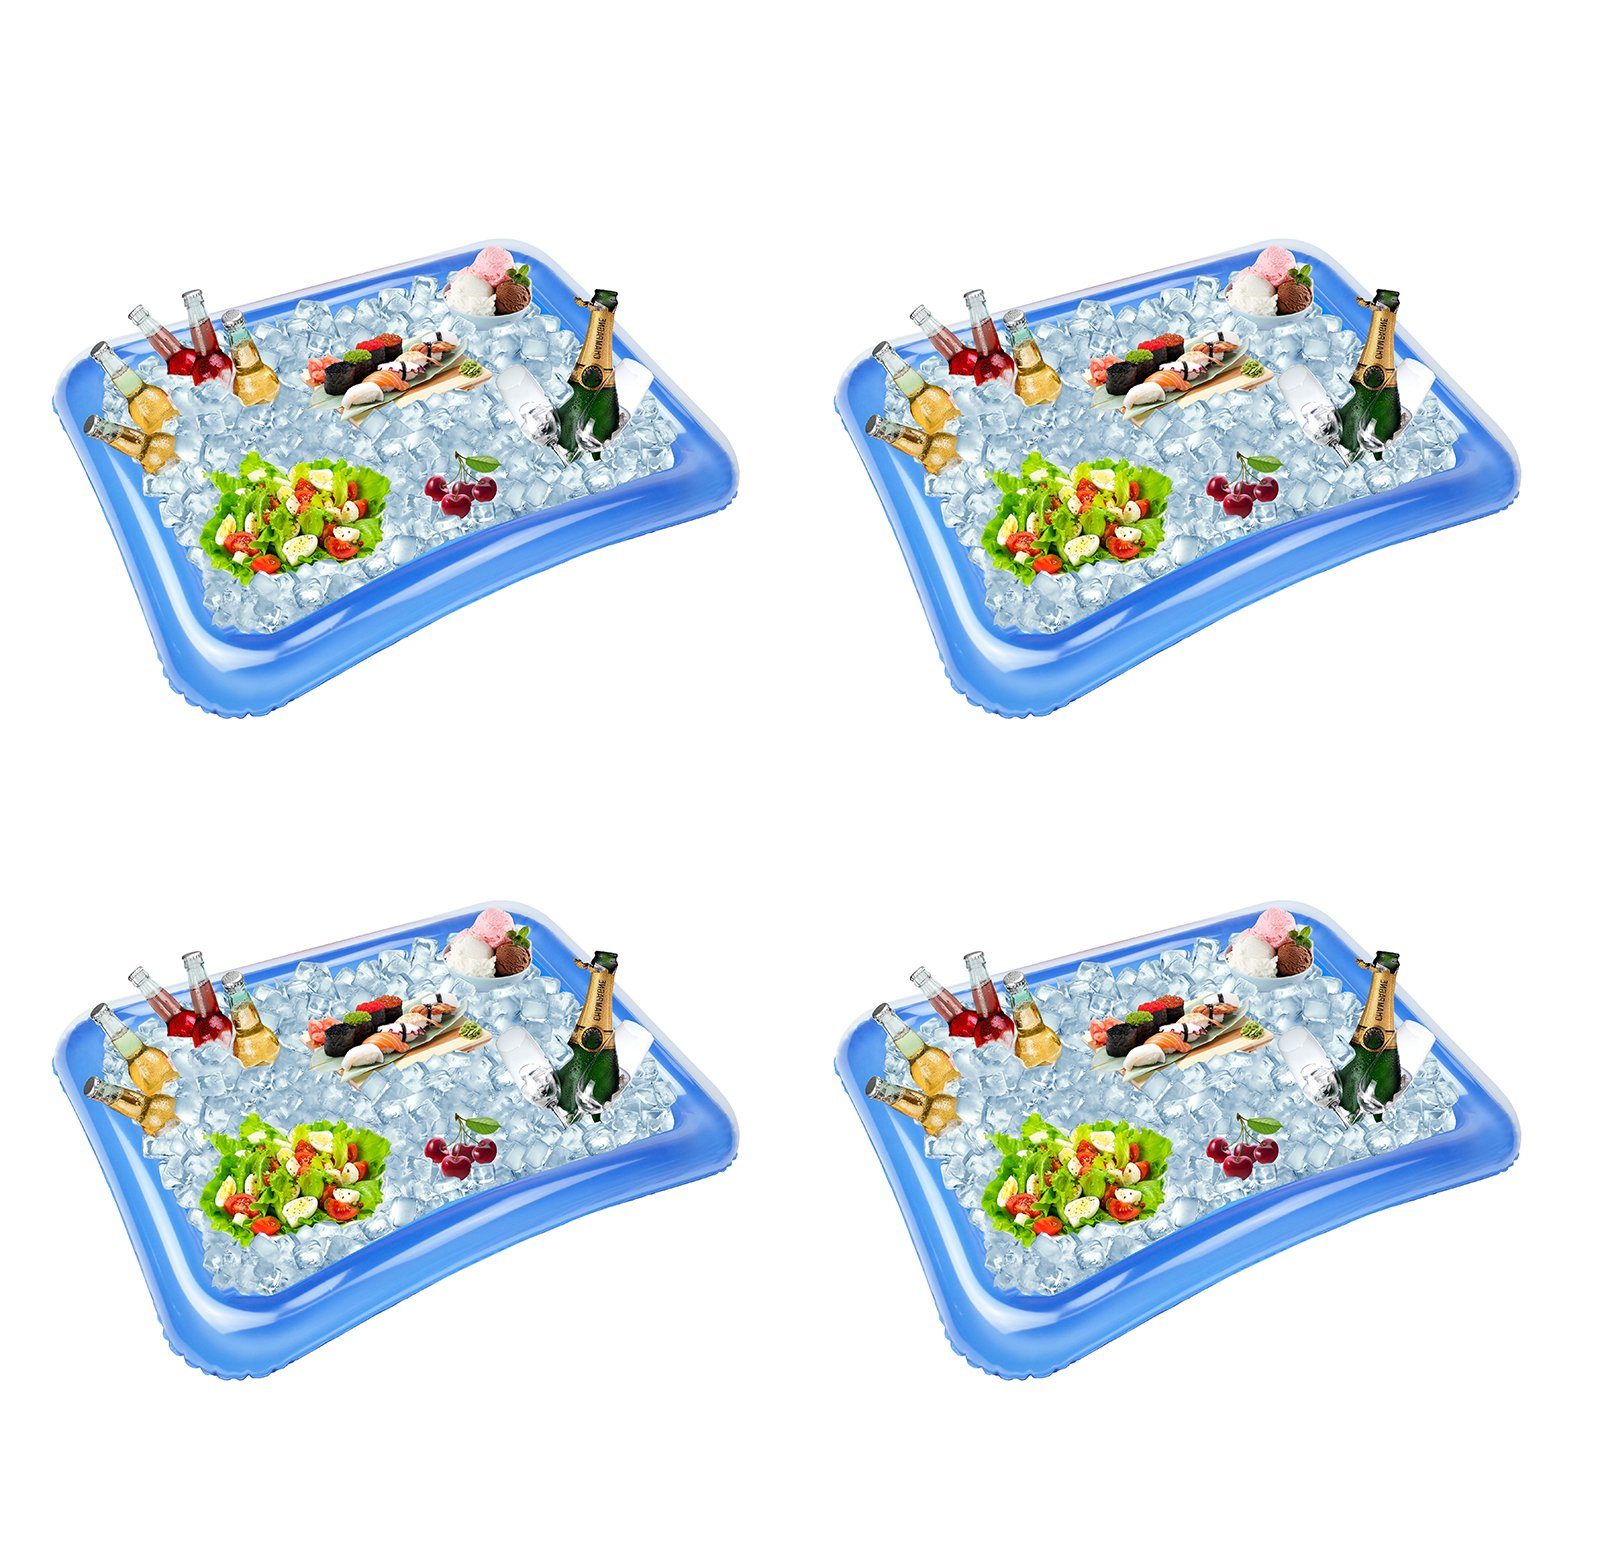 4-Pack Inflatable Ice Serving Bar Coolers for Parties, Salad BBQ Picnic Ice Food Drinks Buffet Server Tray for Indoor Outdoor Party by Festar